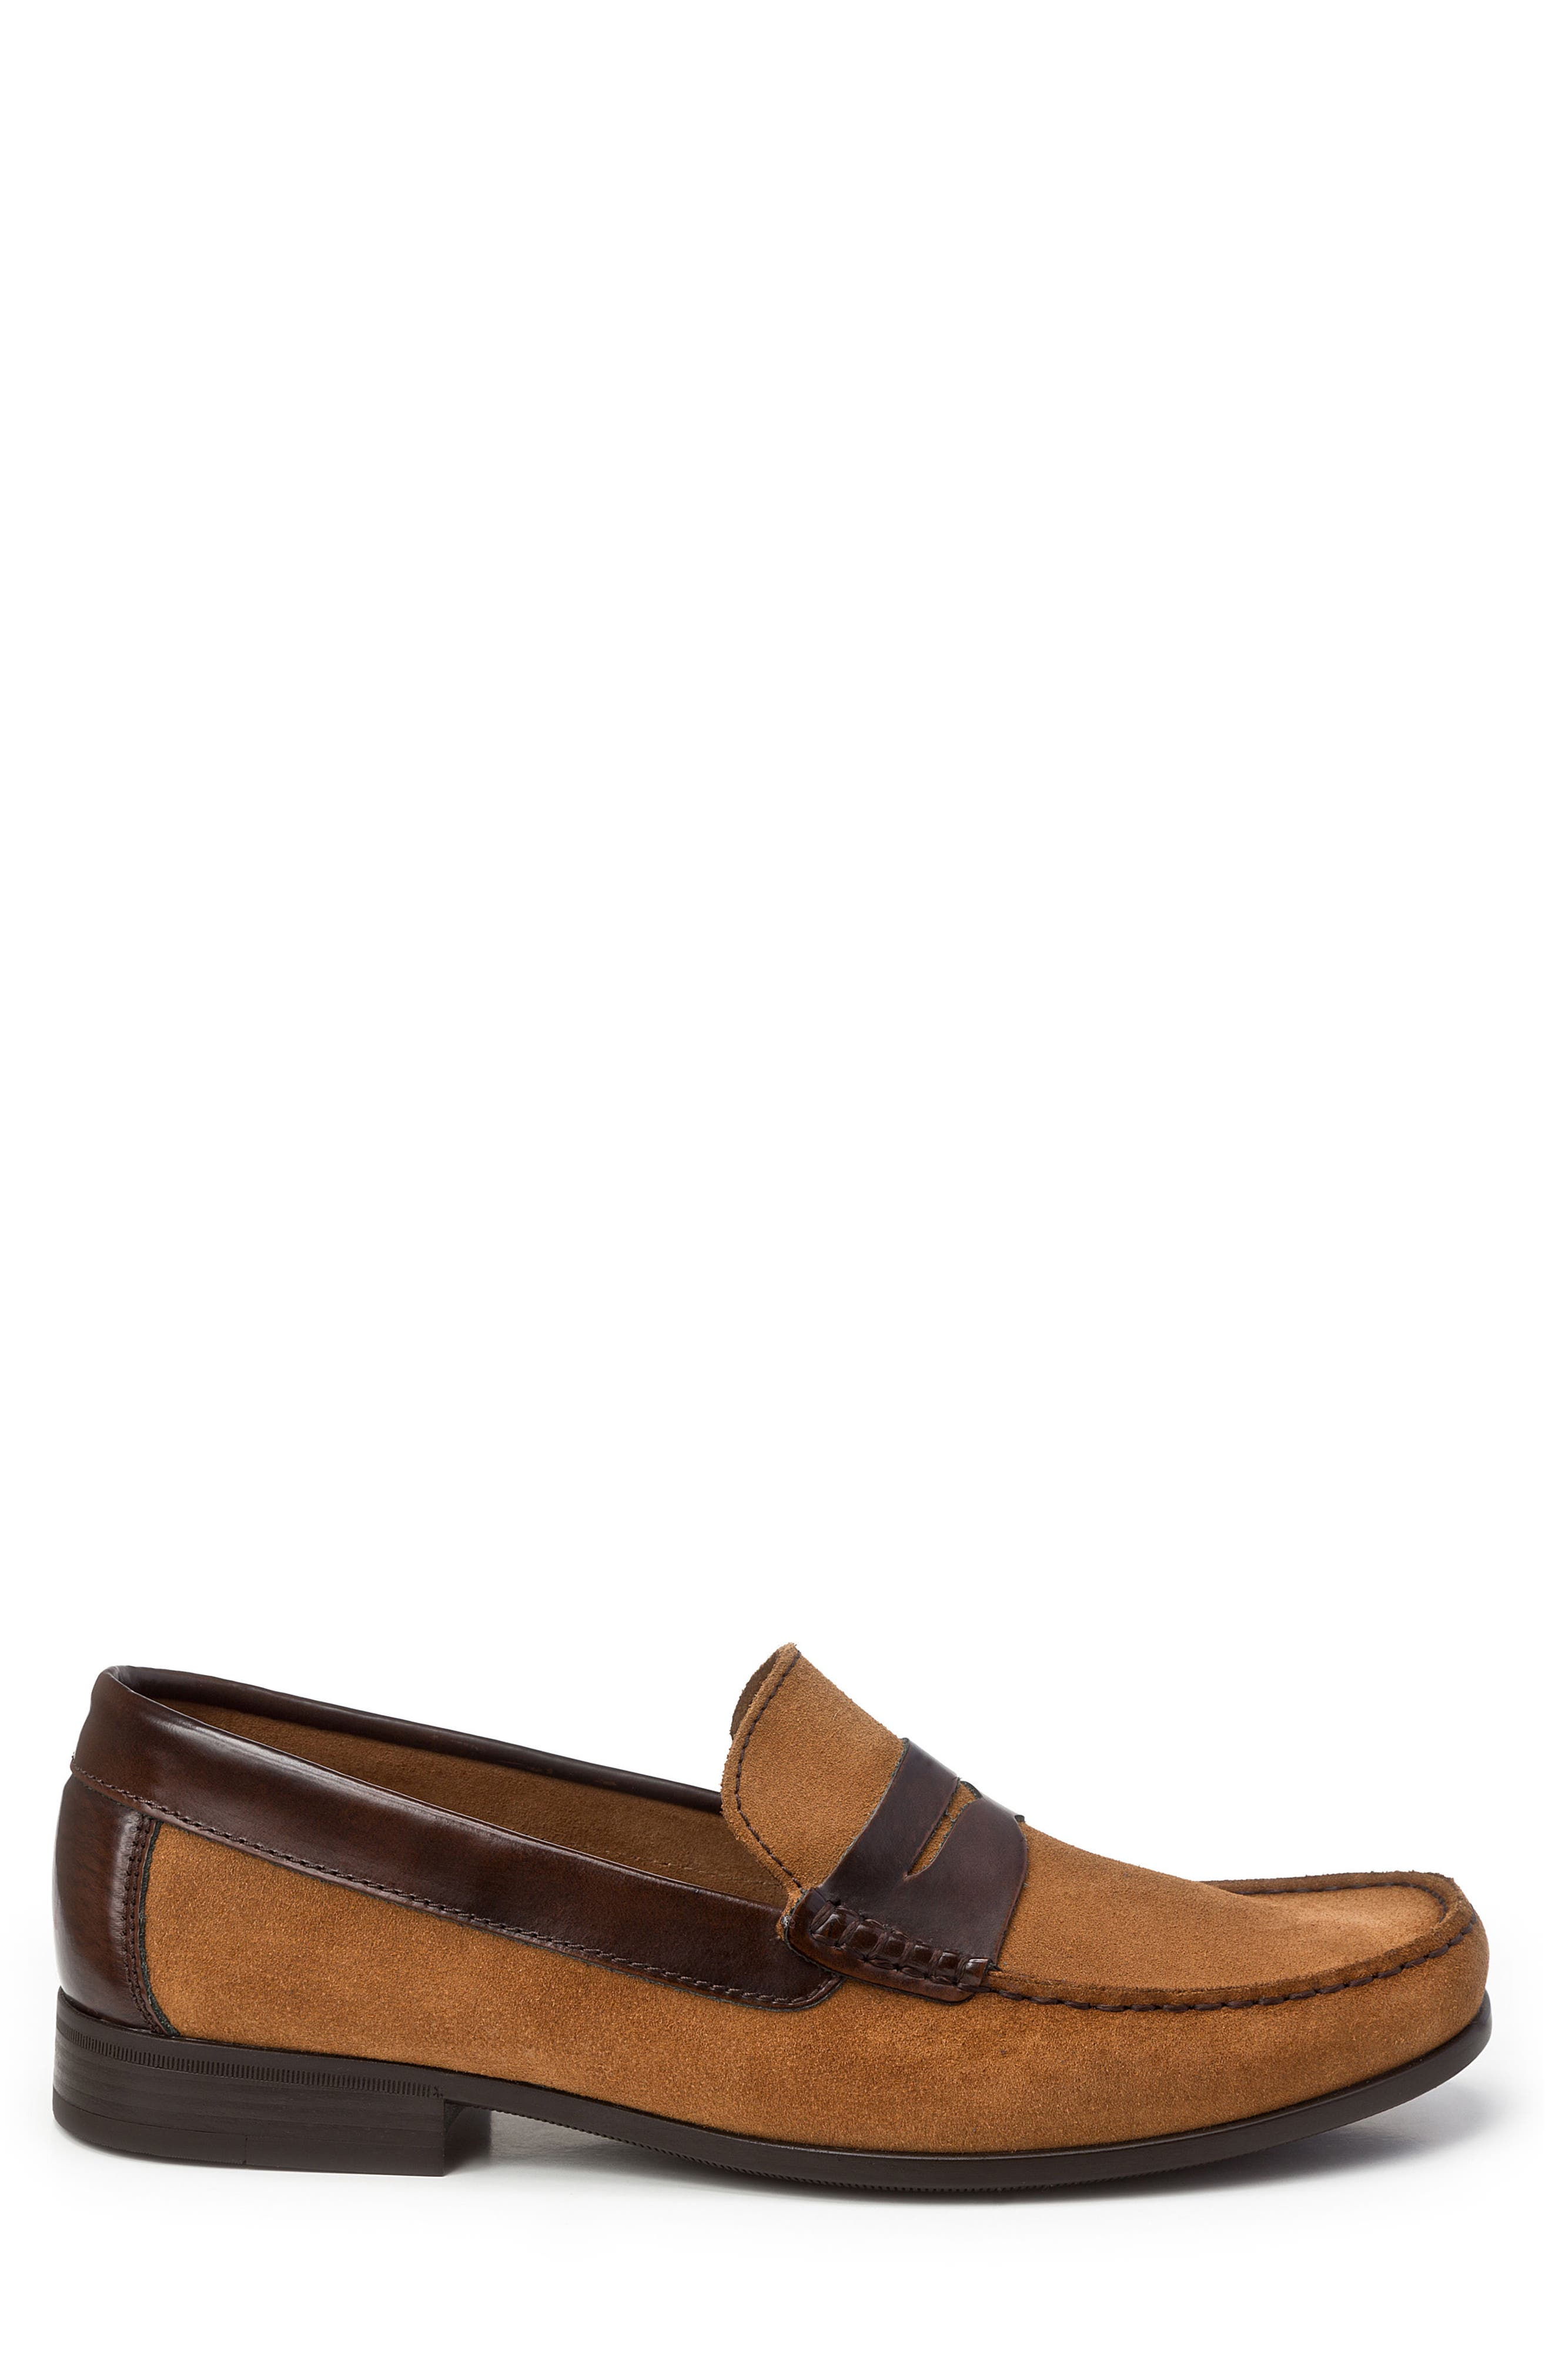 Lucho Penny Loafer,                             Alternate thumbnail 3, color,                             Tan Leather